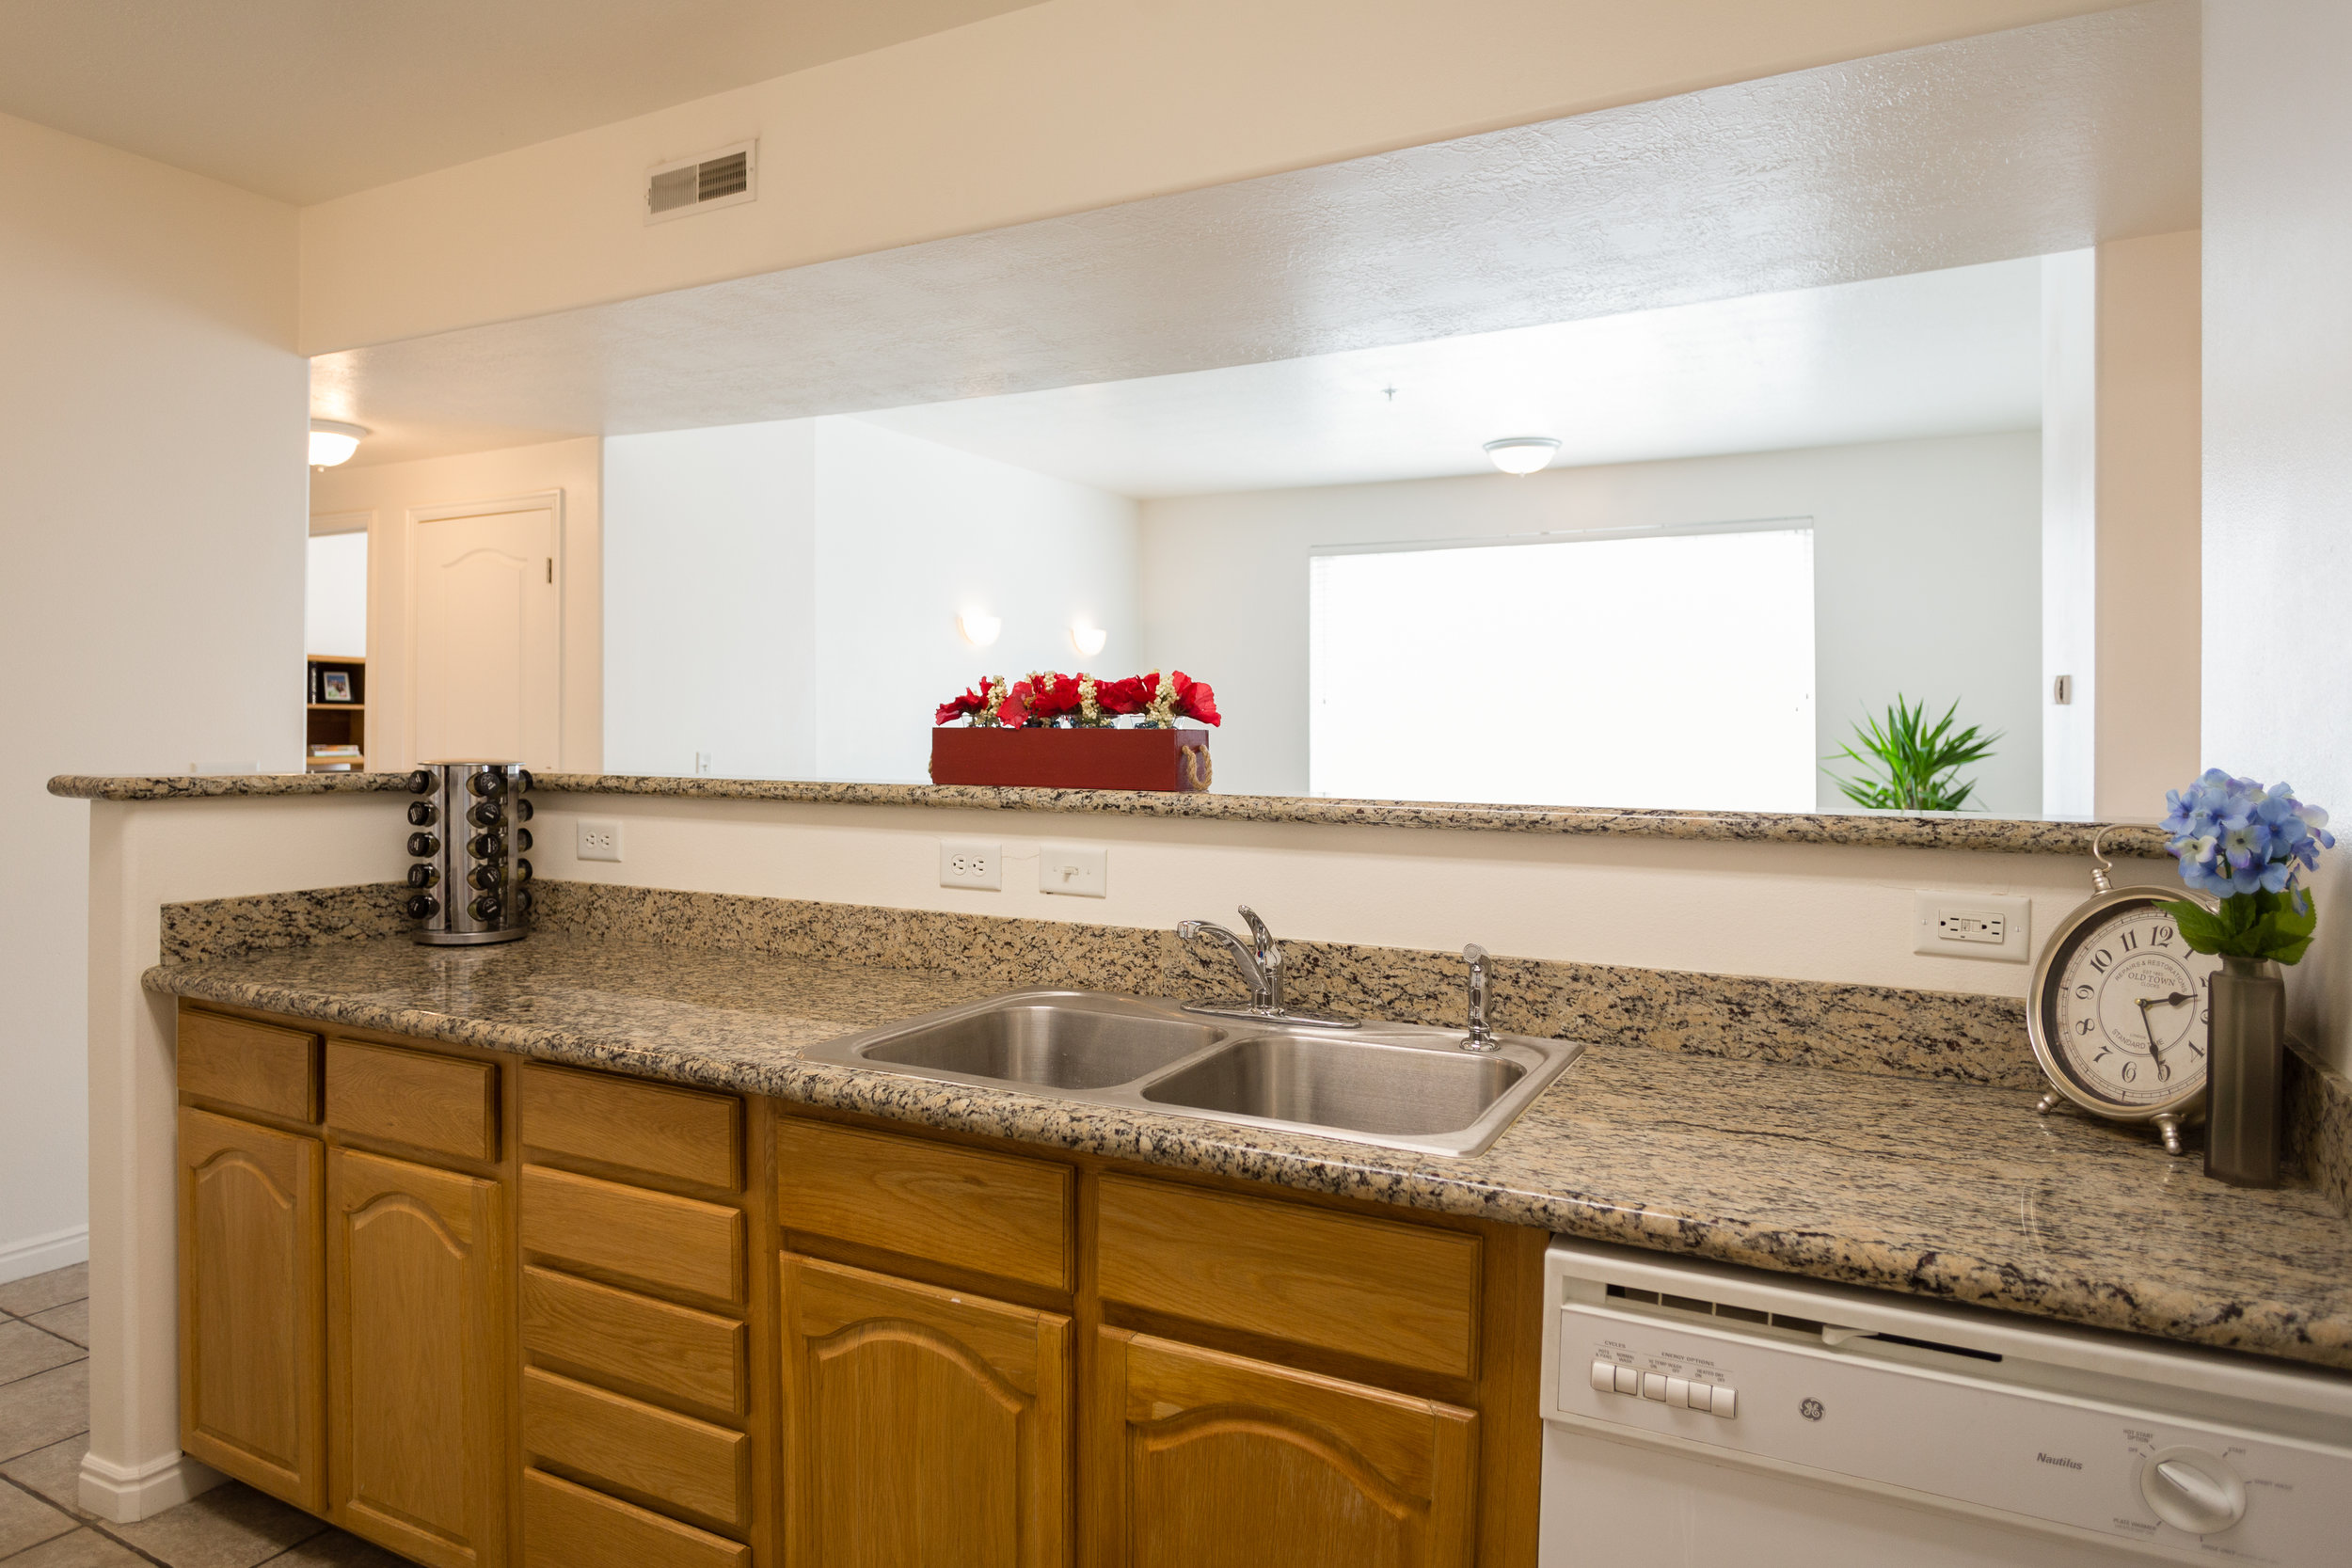 07-22-15 - Kitchen Sink and Countertop.jpg